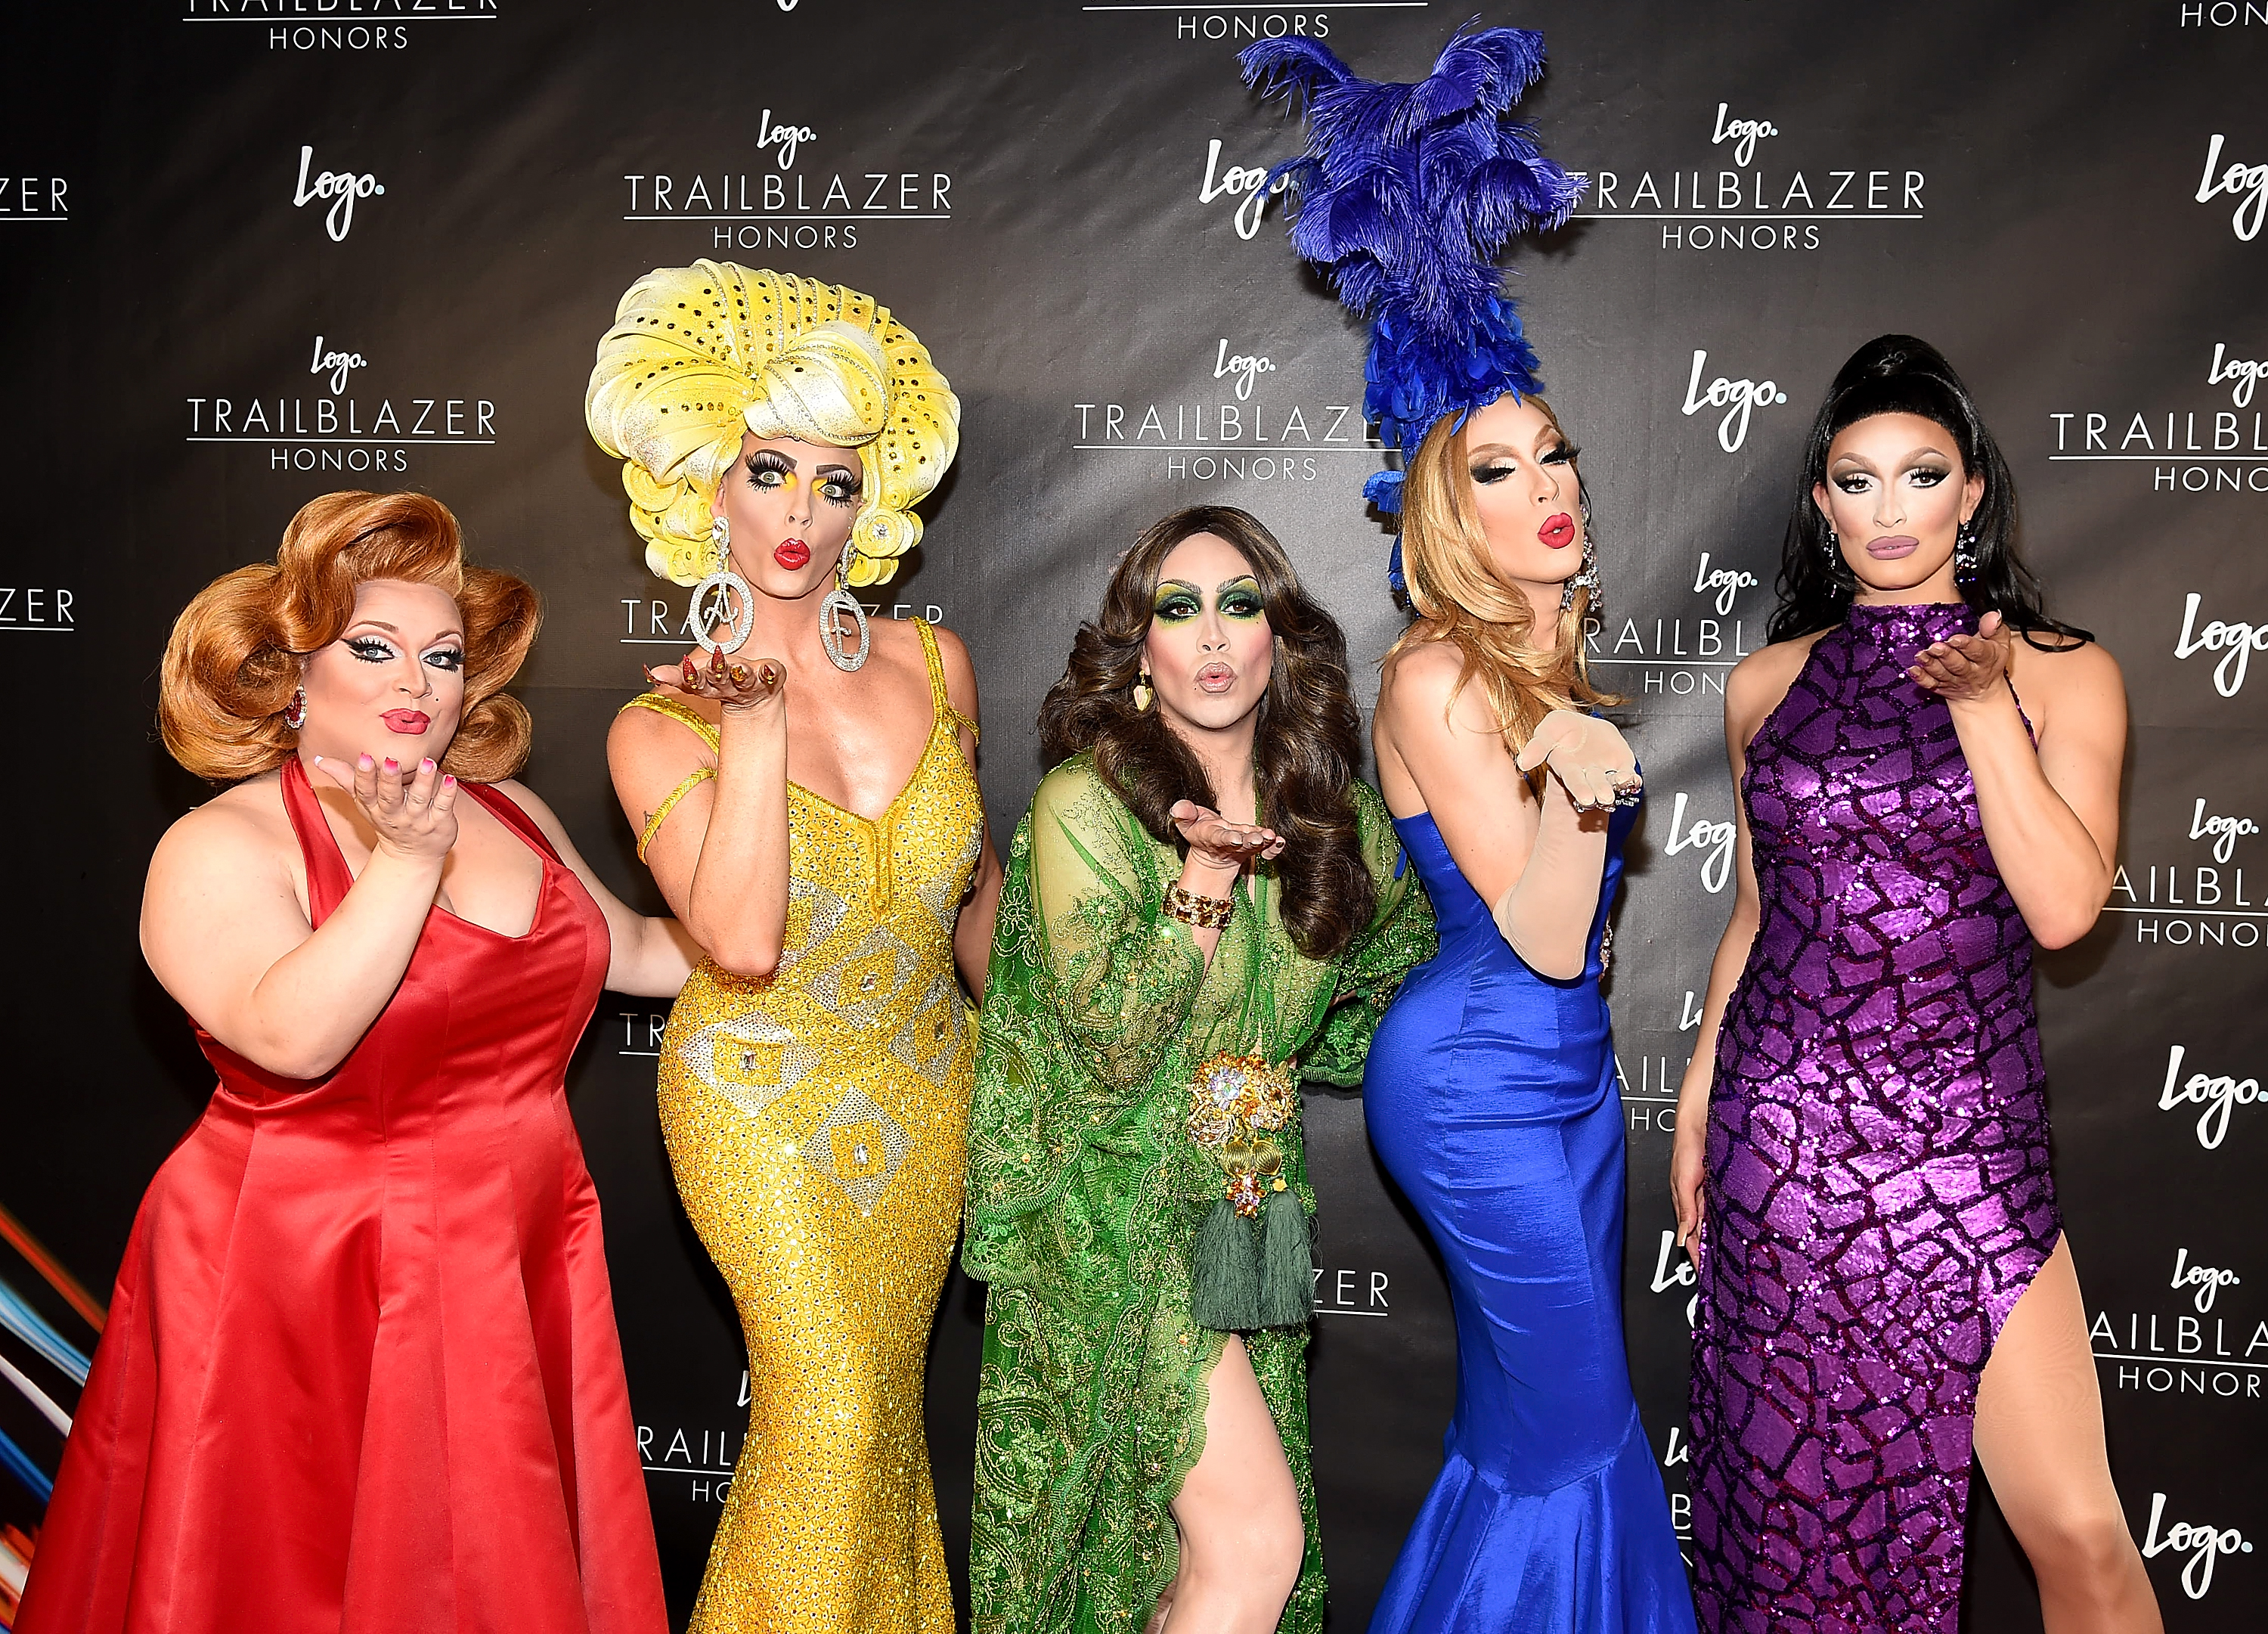 RuPaul's Drag Race is back with a new cast for season 9